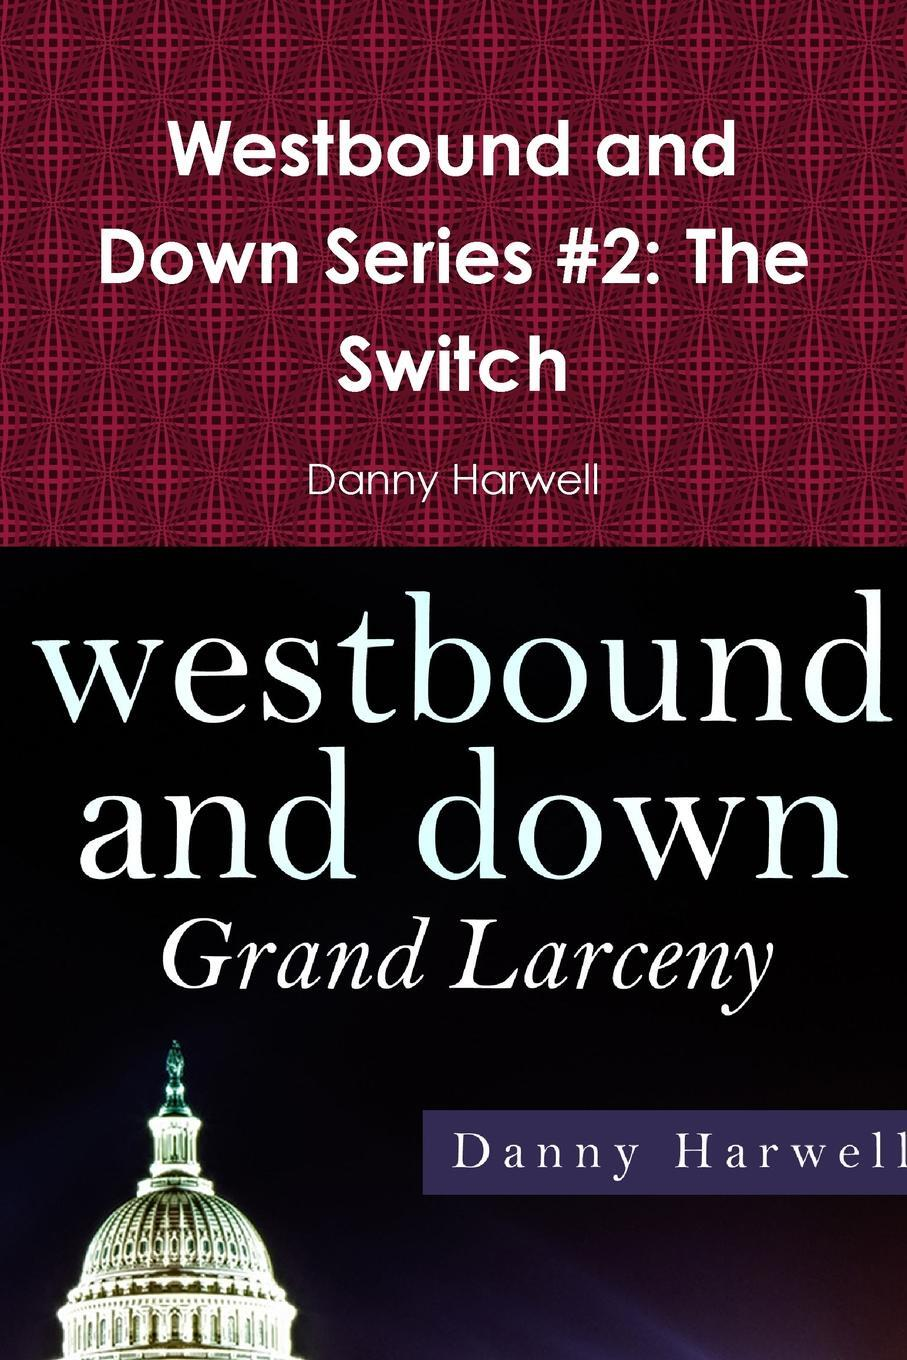 Westbound and Down Series #2.  ...